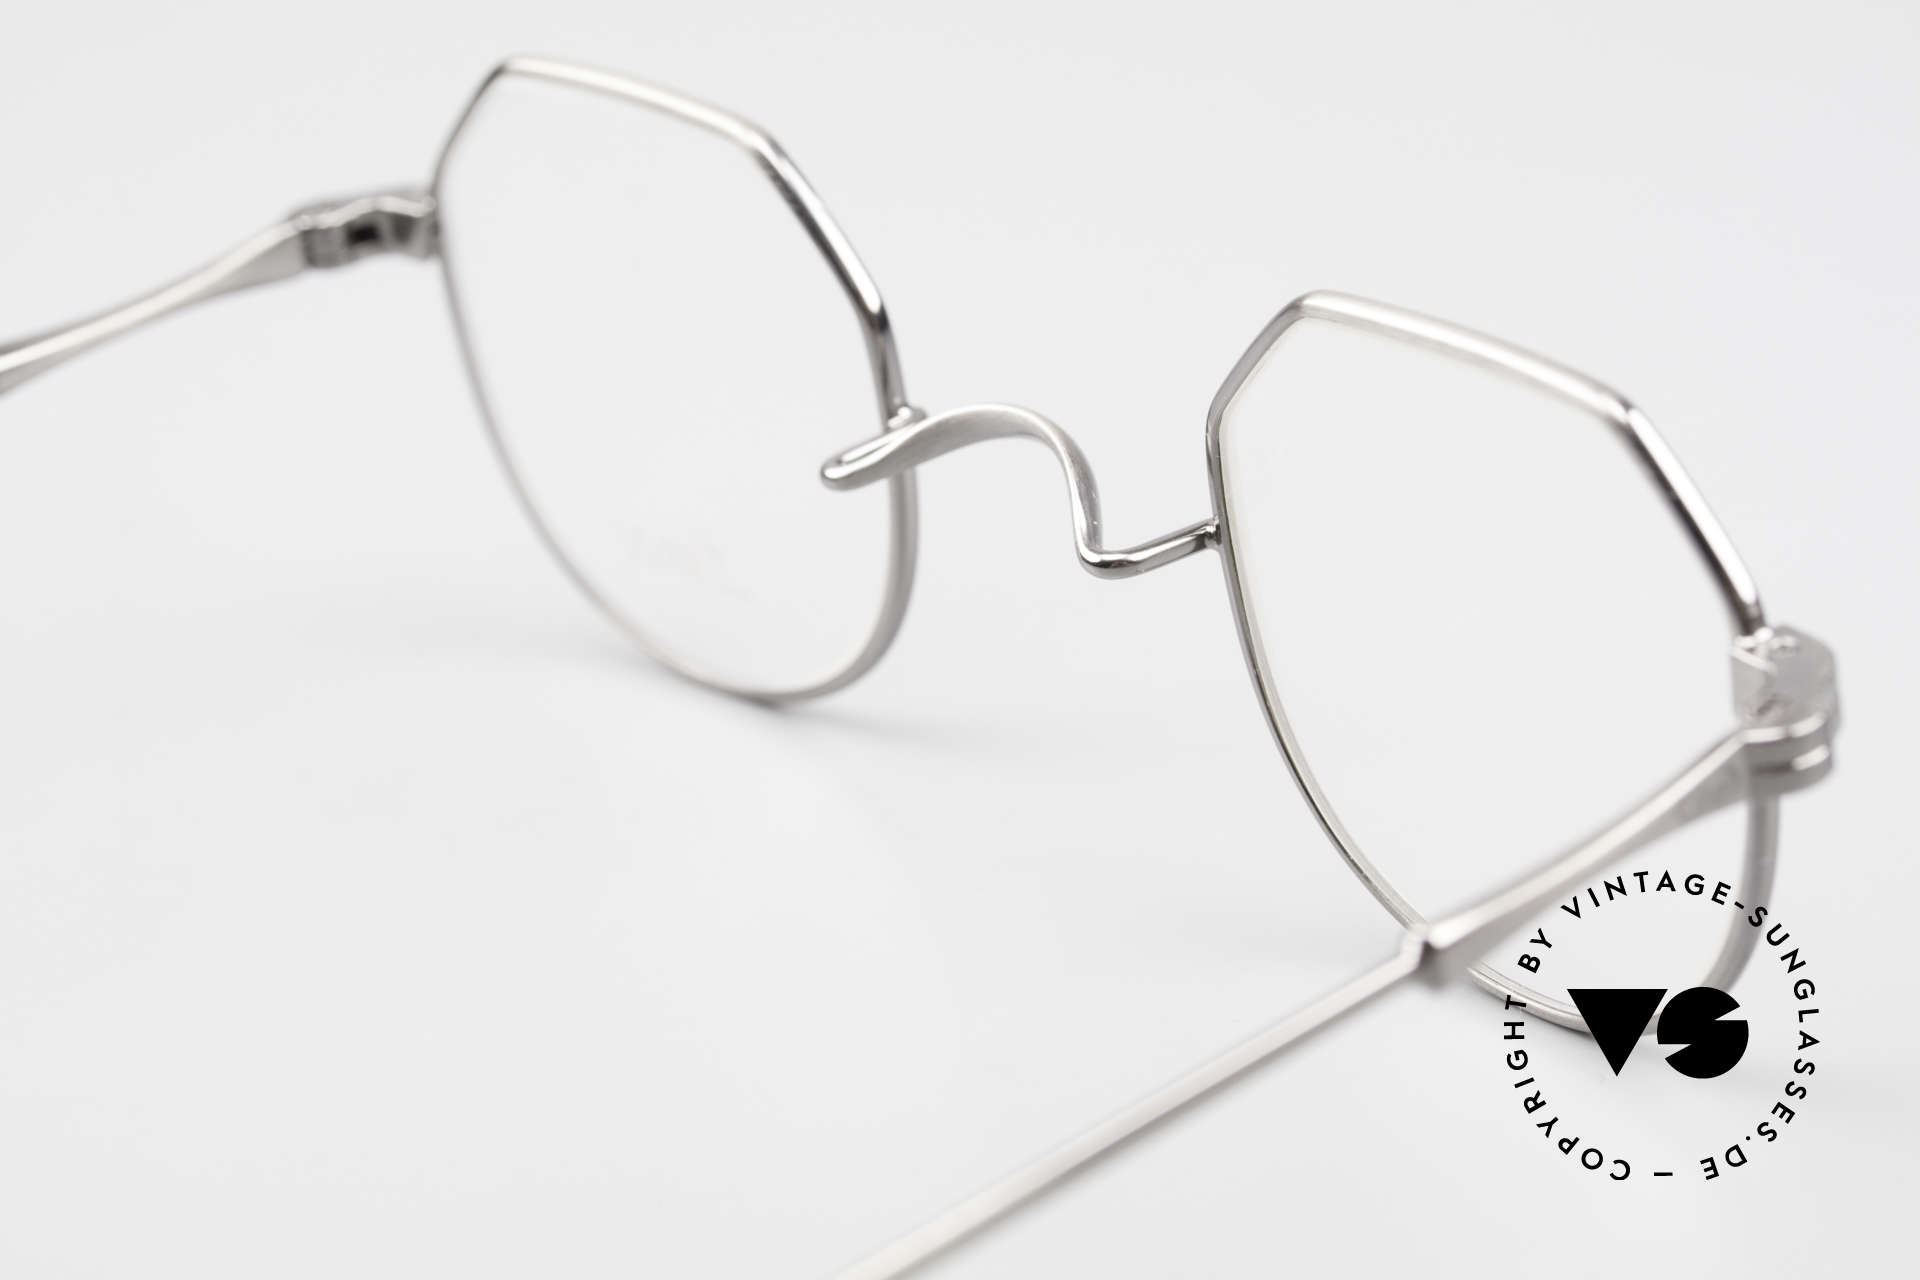 Lunor II 18 Square Panto Eyeglasses Metal, Size: extra small, Made for Men and Women